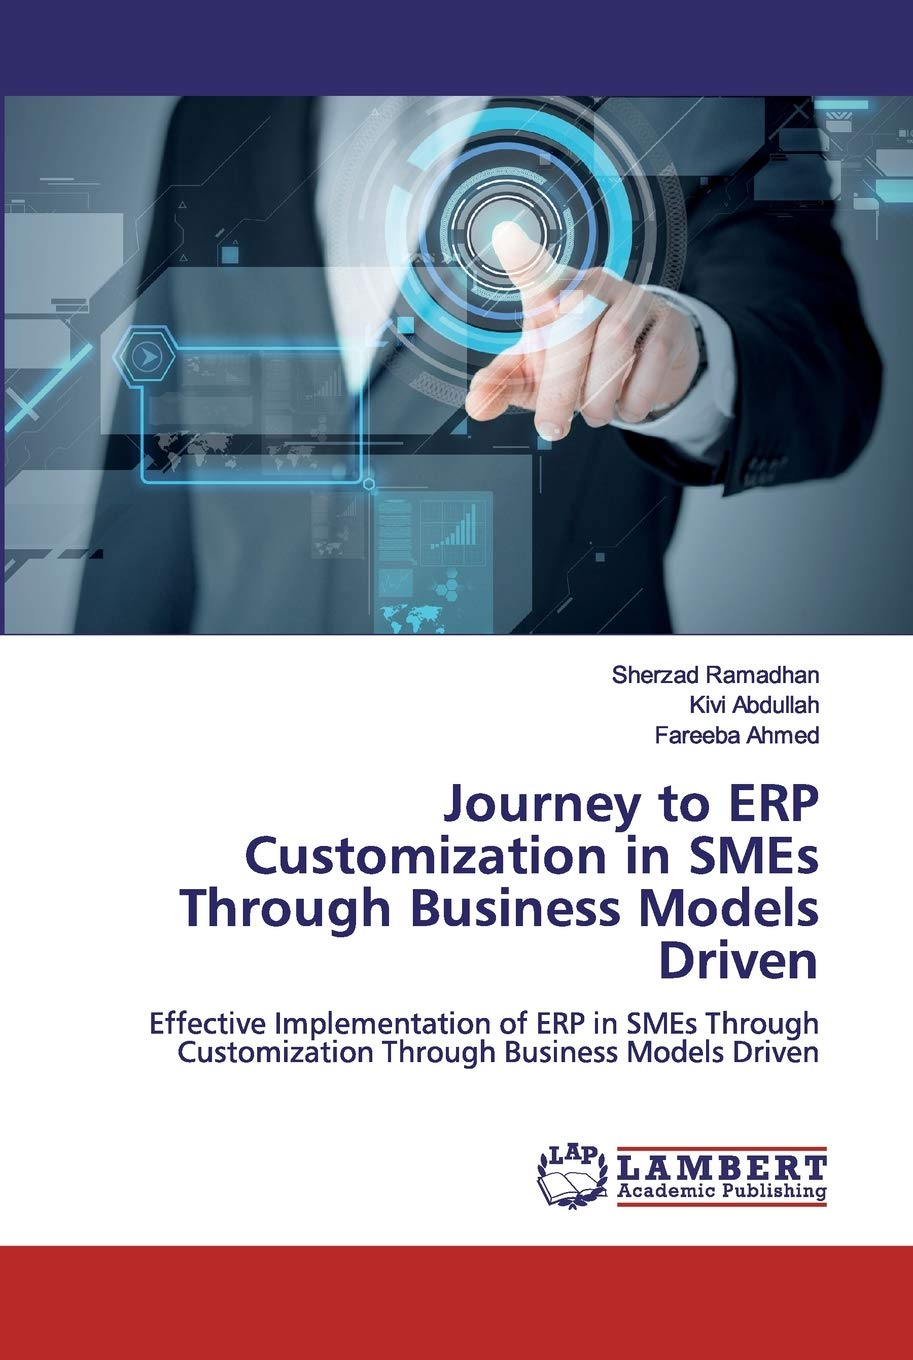 Journey to ERP Customization in SMEs Through Business Models Driven: Effective Implementation of ERP in SMEs Through Customization Through Business Models Driven